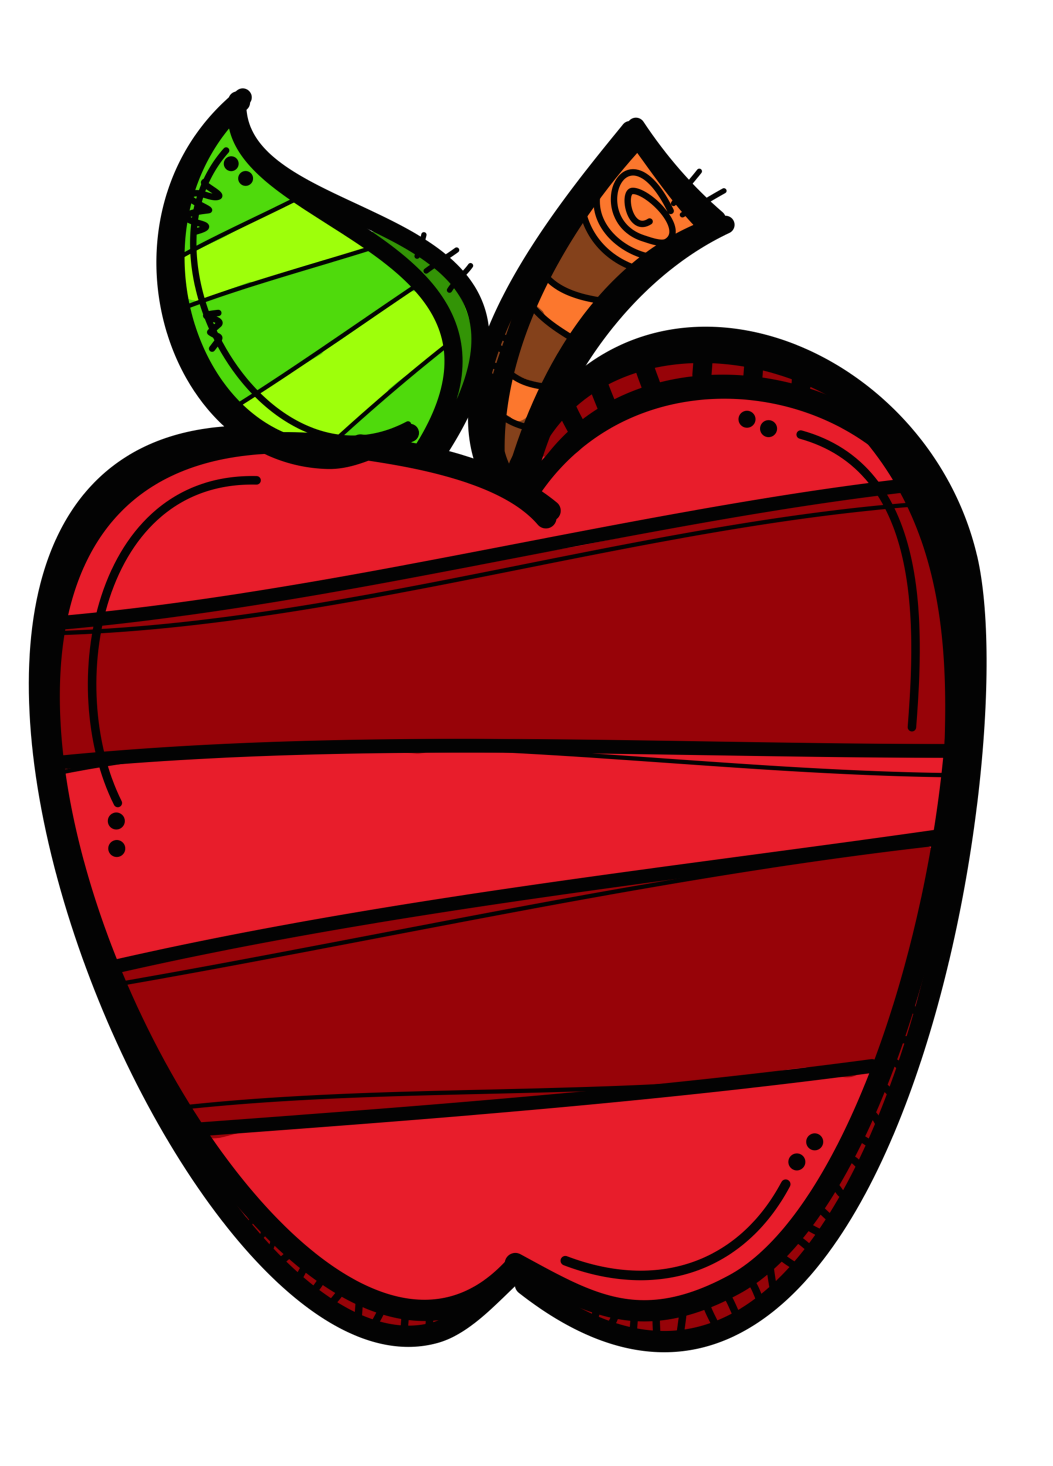 Number one apple clipart clipart library download Pin by Kathleen Cummings on Art Ideas | Pinterest | Apples, Clip art ... clipart library download